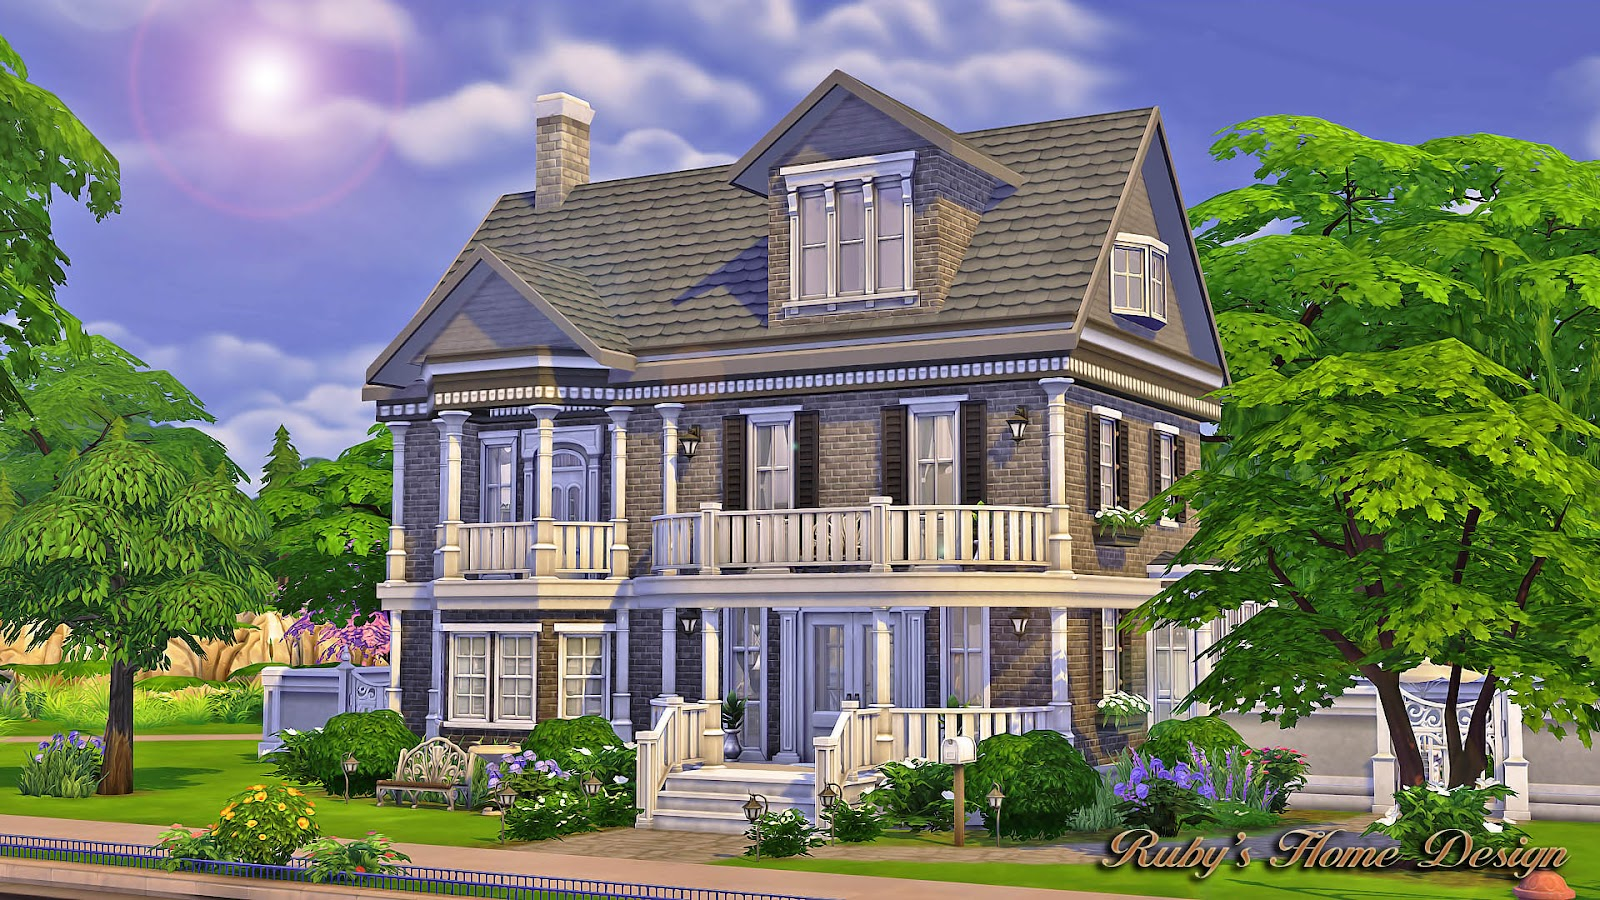 Sims4 the chocolate house no cc ruby 39 s home design for Sims 4 house plans